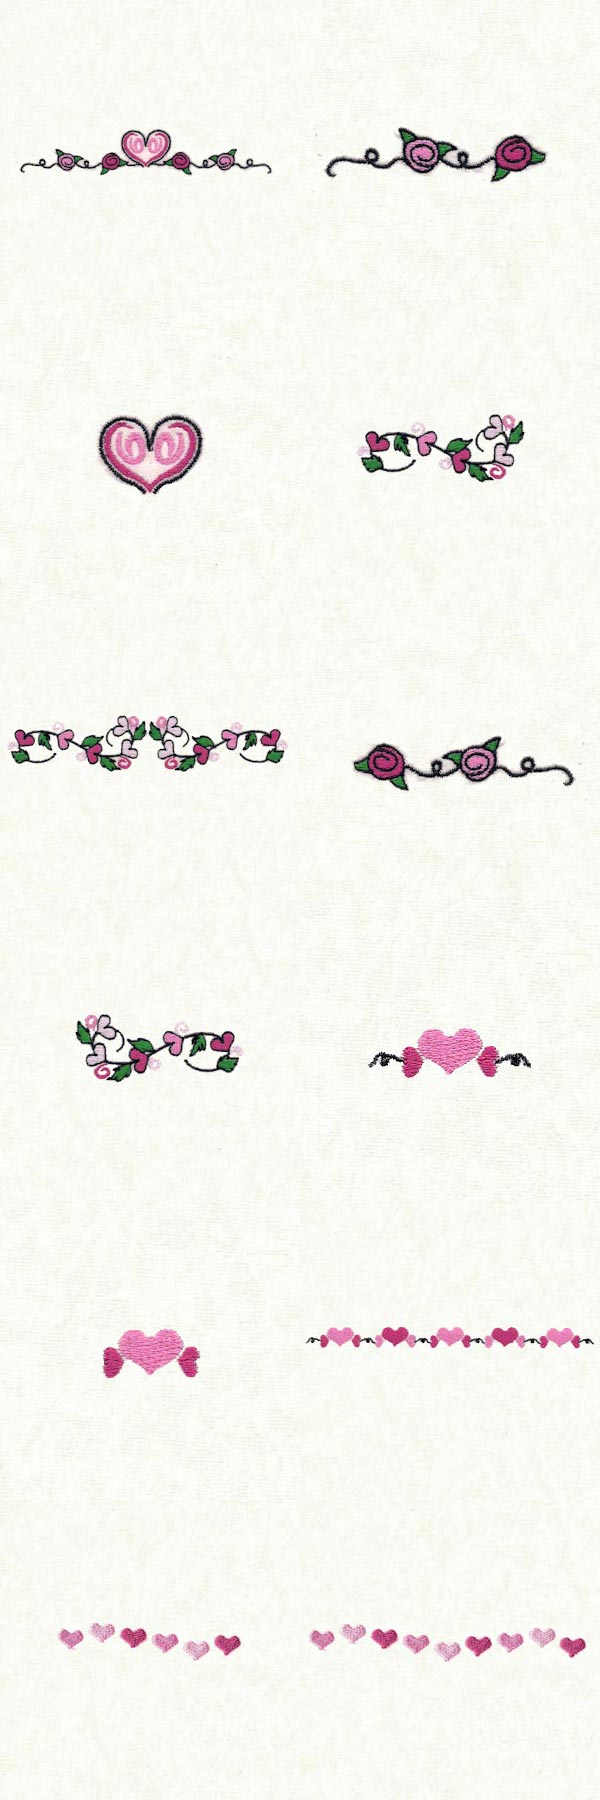 Valentine Border 2 Embroidery Machine Design Details